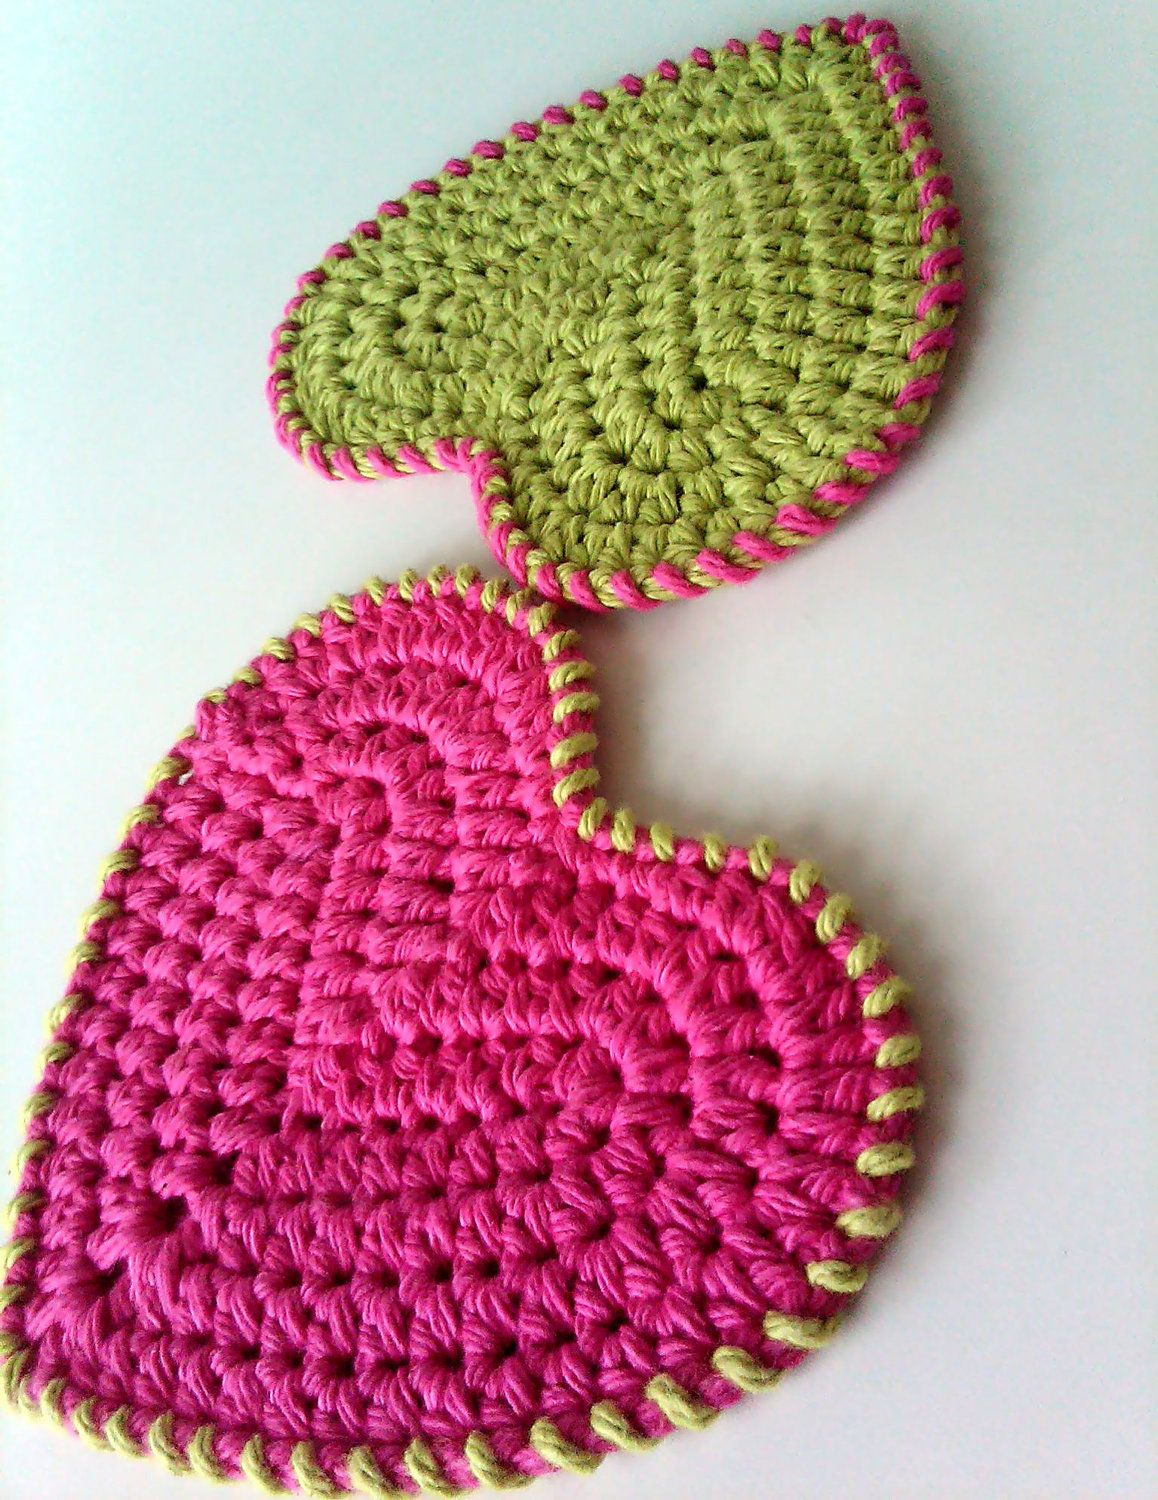 Cotton Crocheted Washcloth Scrubbie - Hearts - Set of 2 - Lime Green and Dark Pink. $5.50, via Etsy.